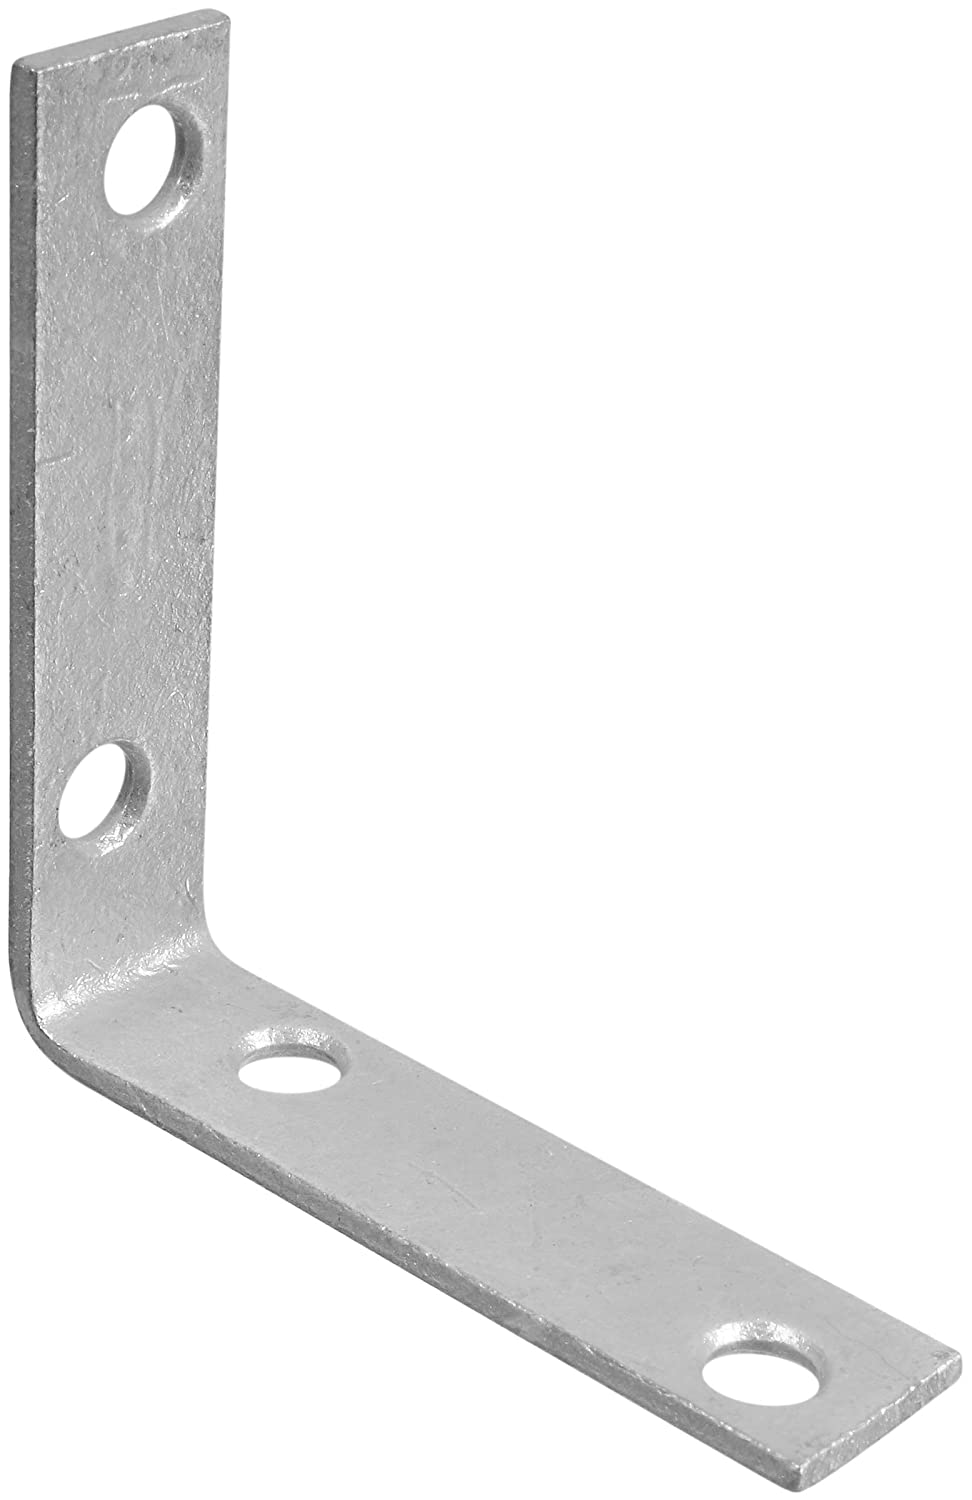 Stanley Hardware 2 1 2 Inch Corner Brace Mechanically Galvanized #756373700